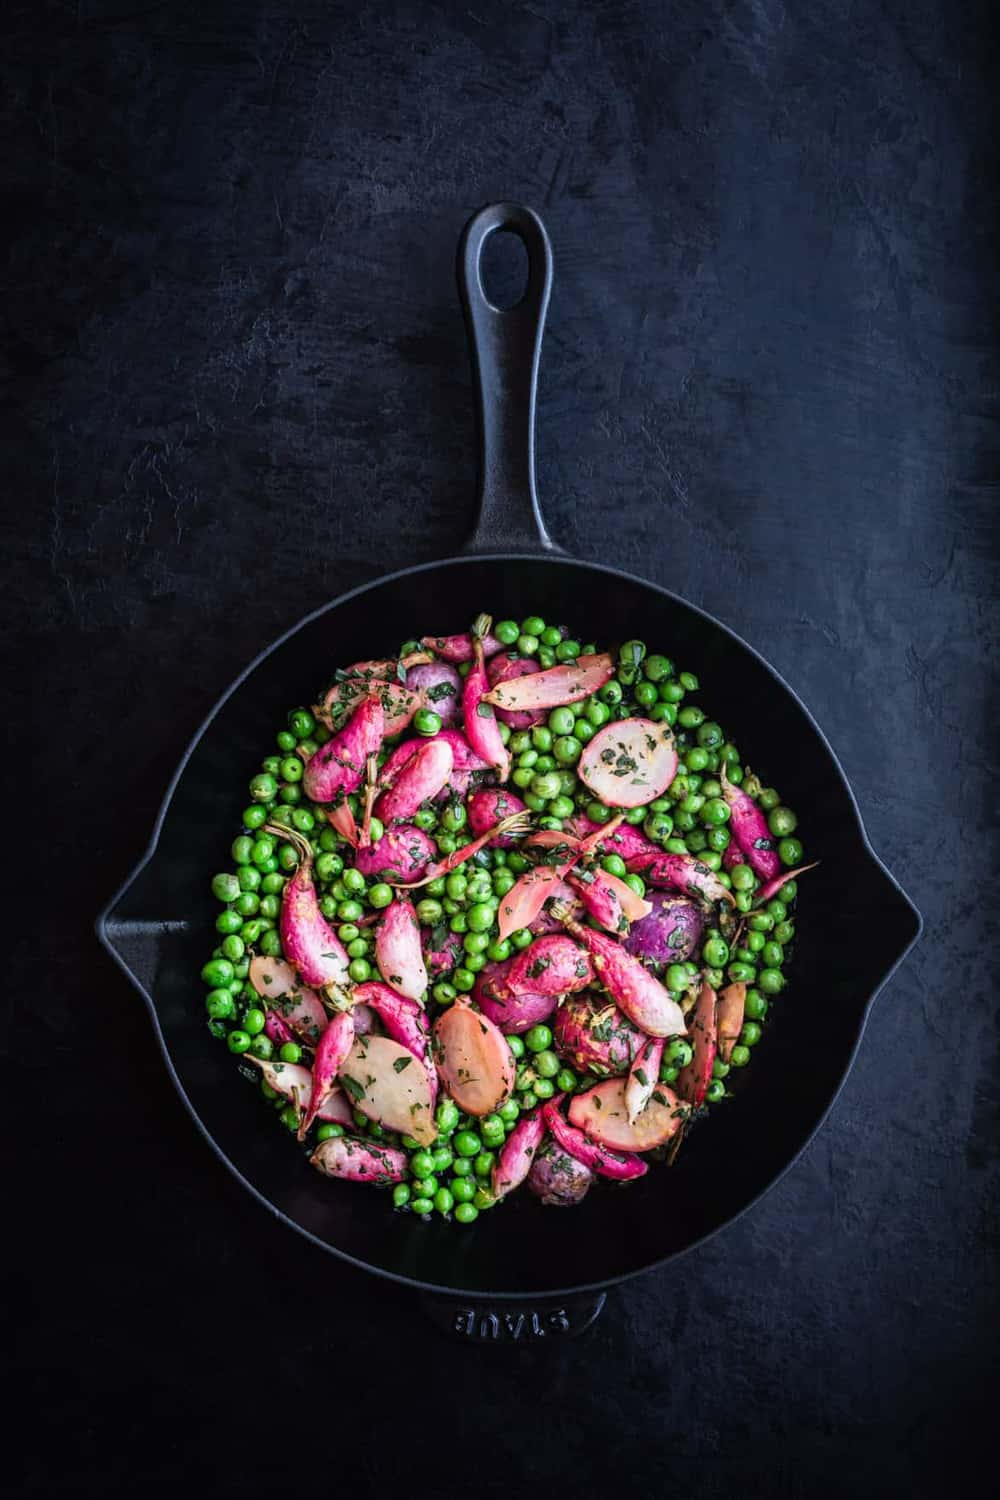 Cast iron skillet with peas and radishes mixed together and topped with tarragon.